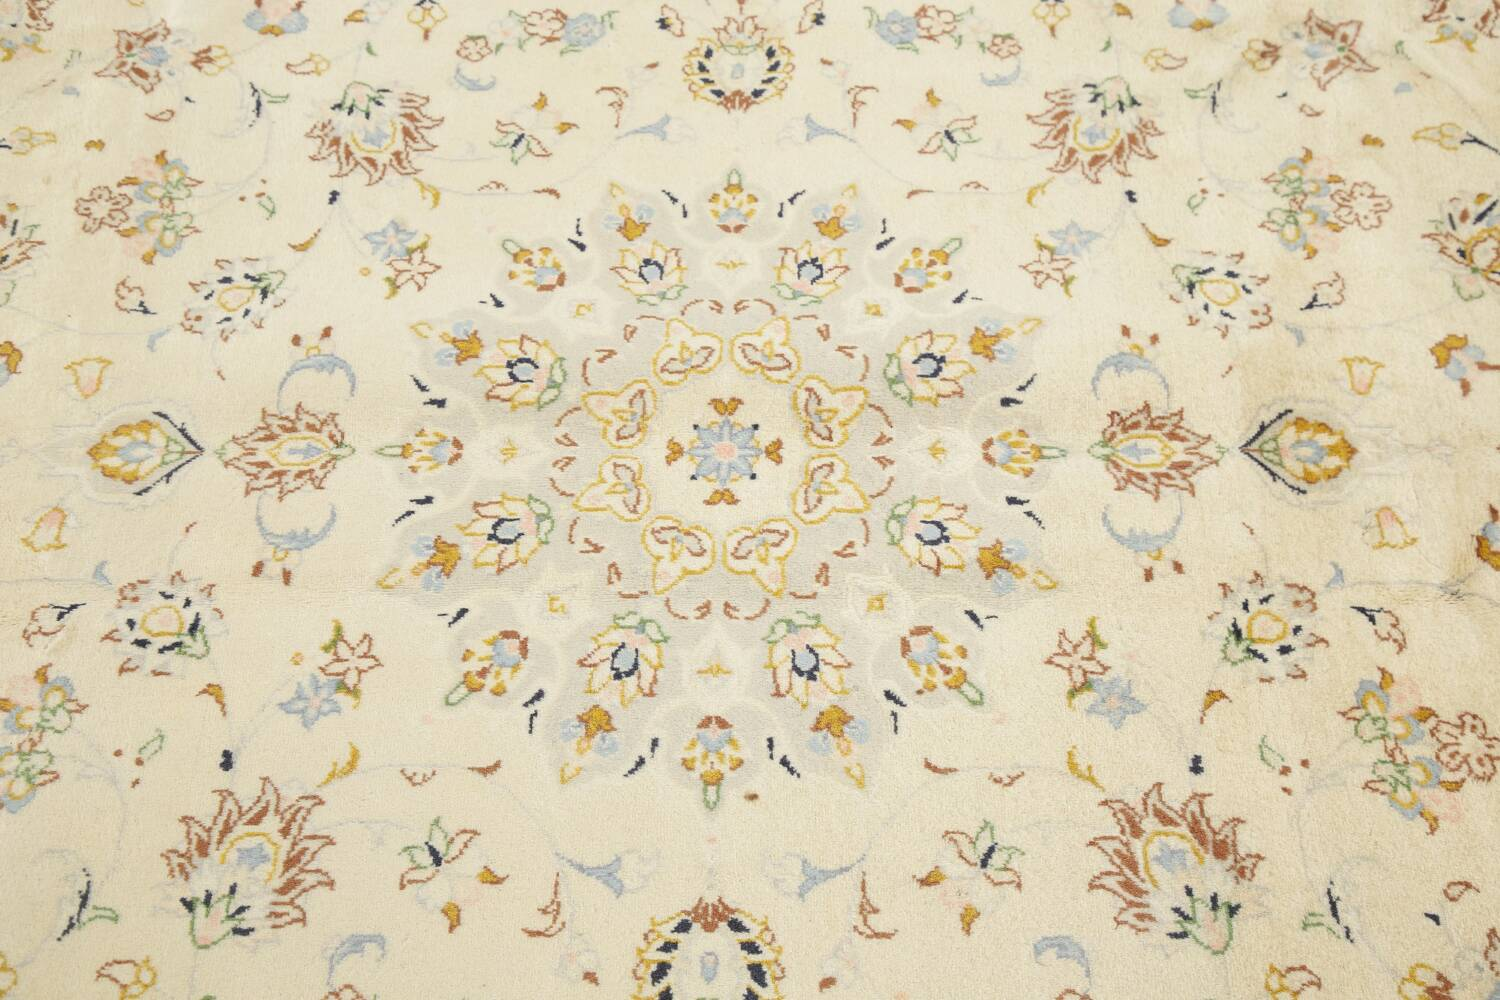 Floral Kashan Persian Area Rug 6x10 image 12